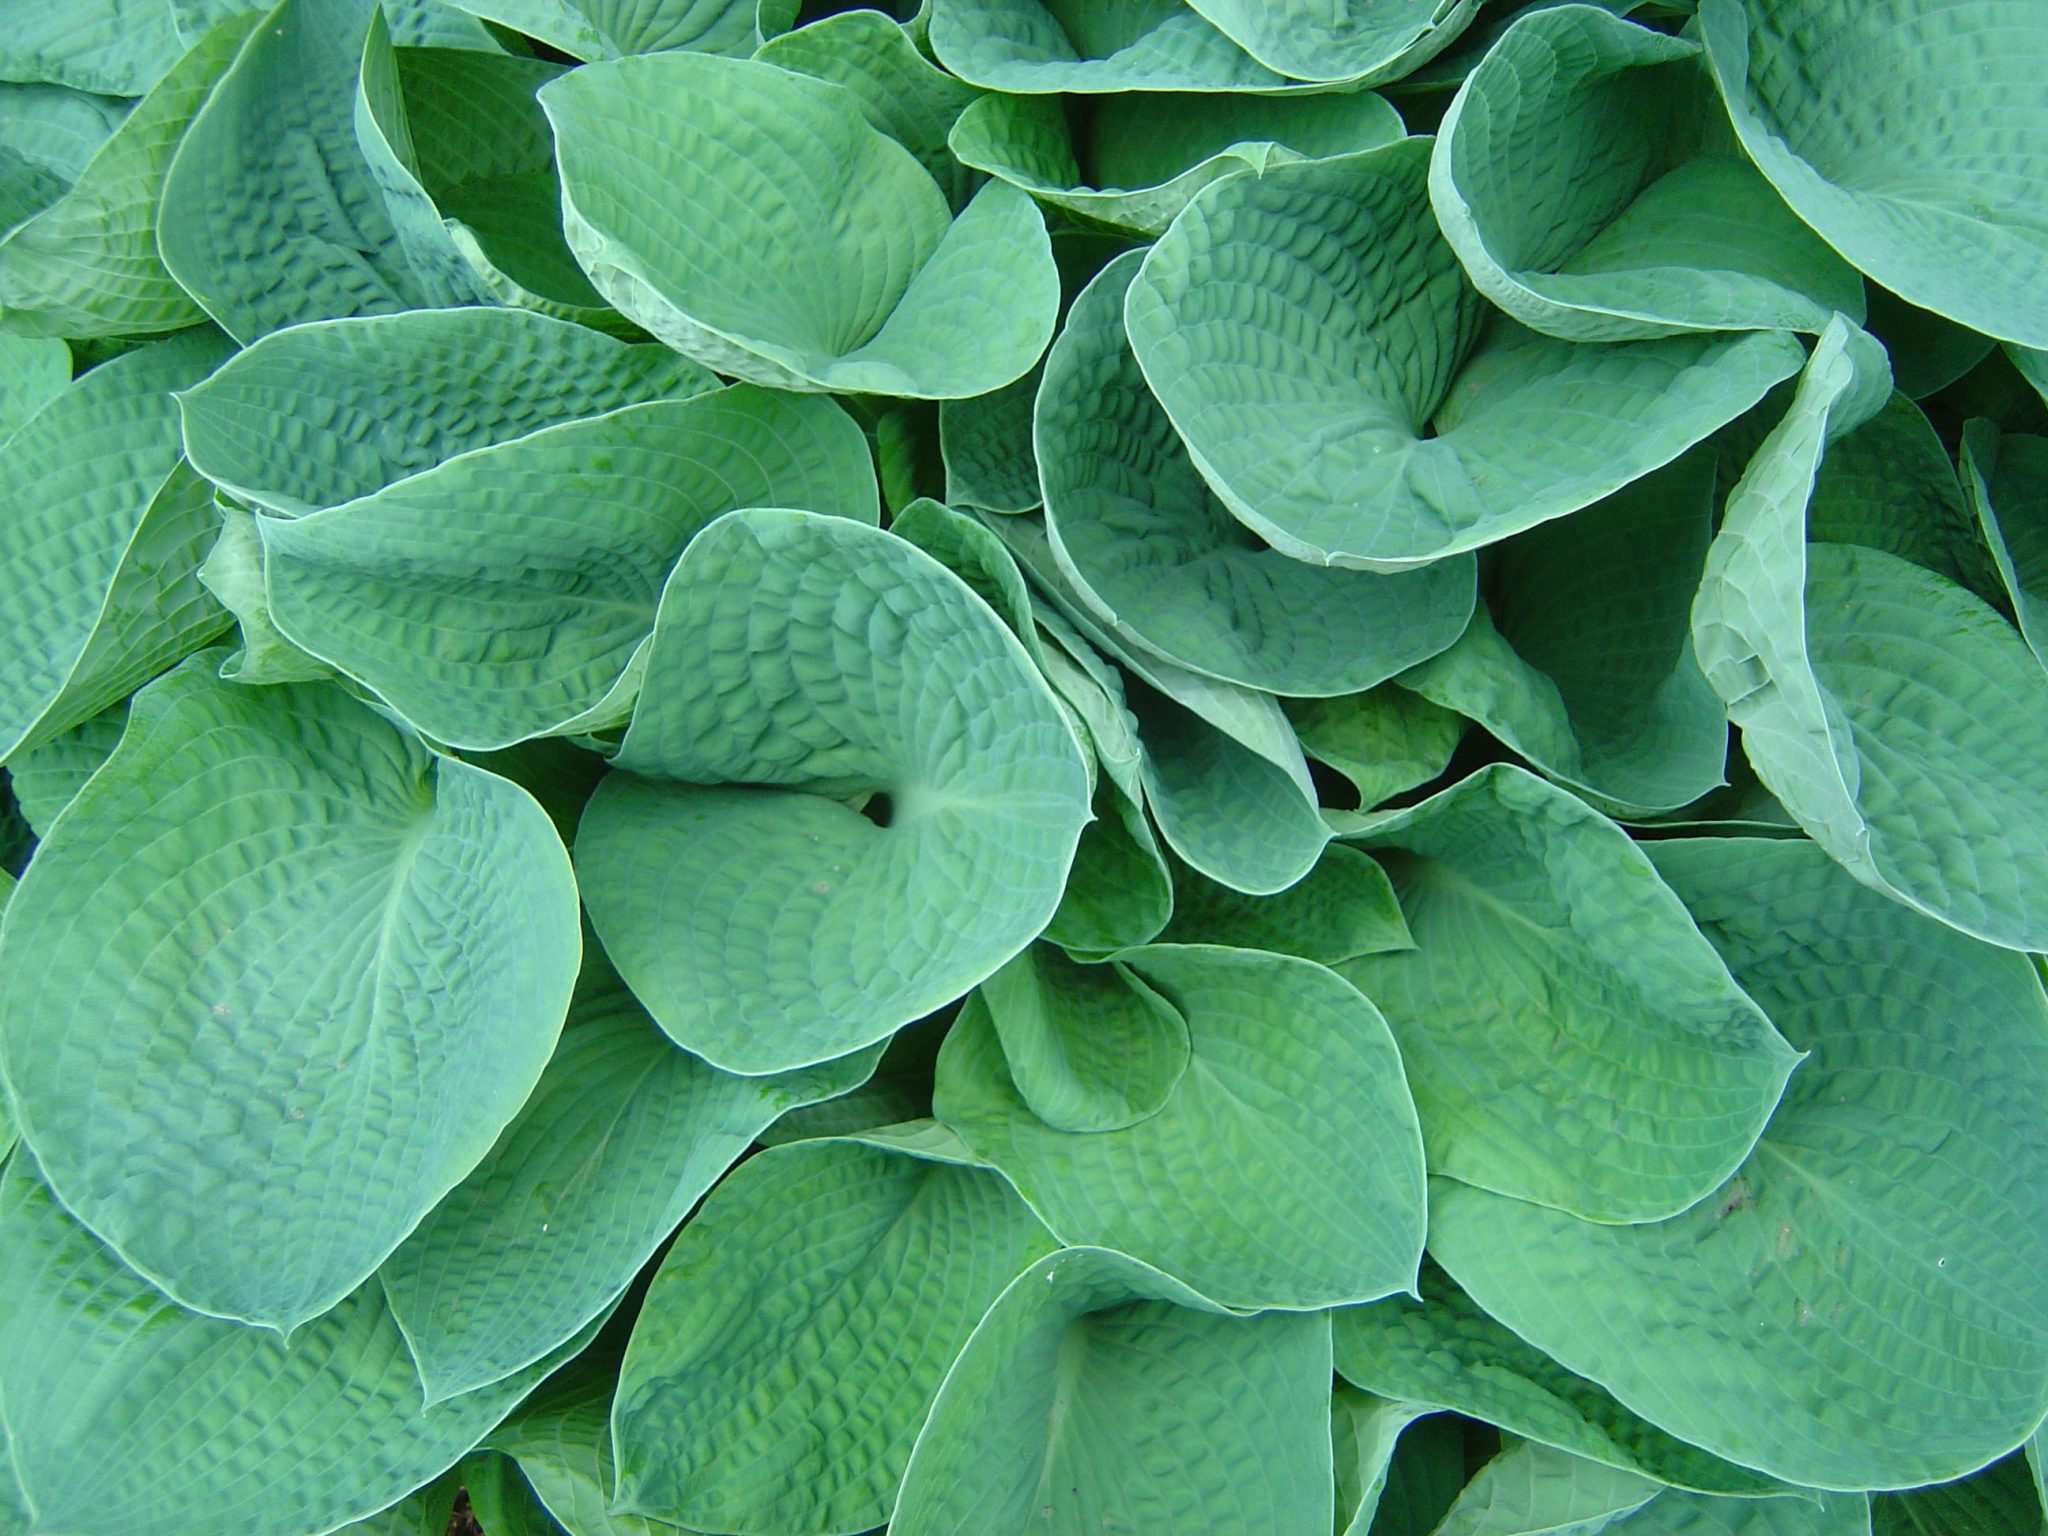 Green Hosta with Textured Leaves